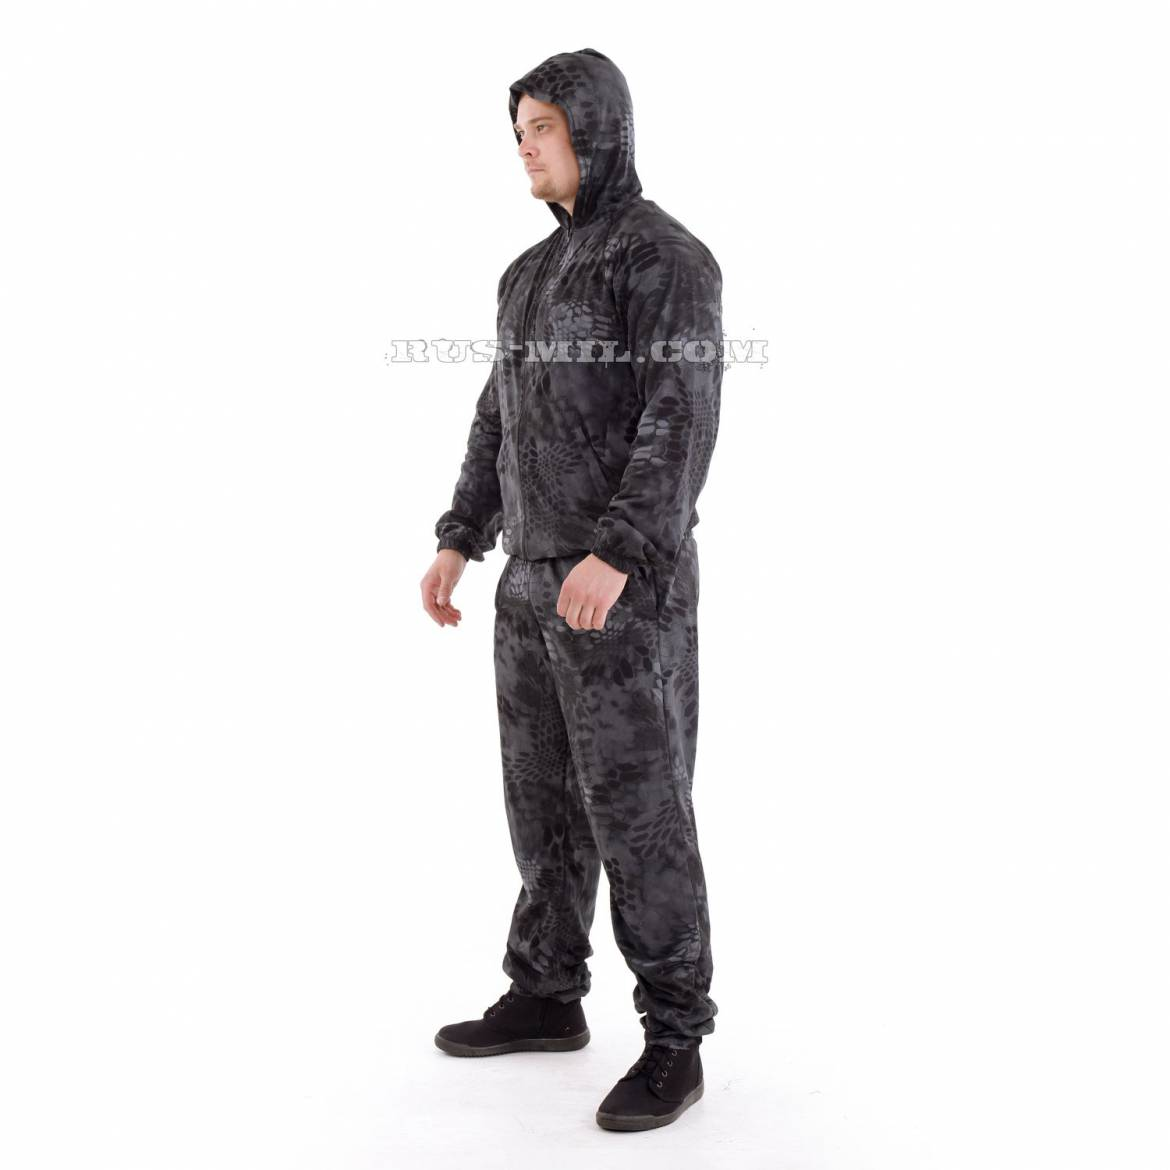 Russian-knitted-Suit-in-22Typhon22-Colour.jpg